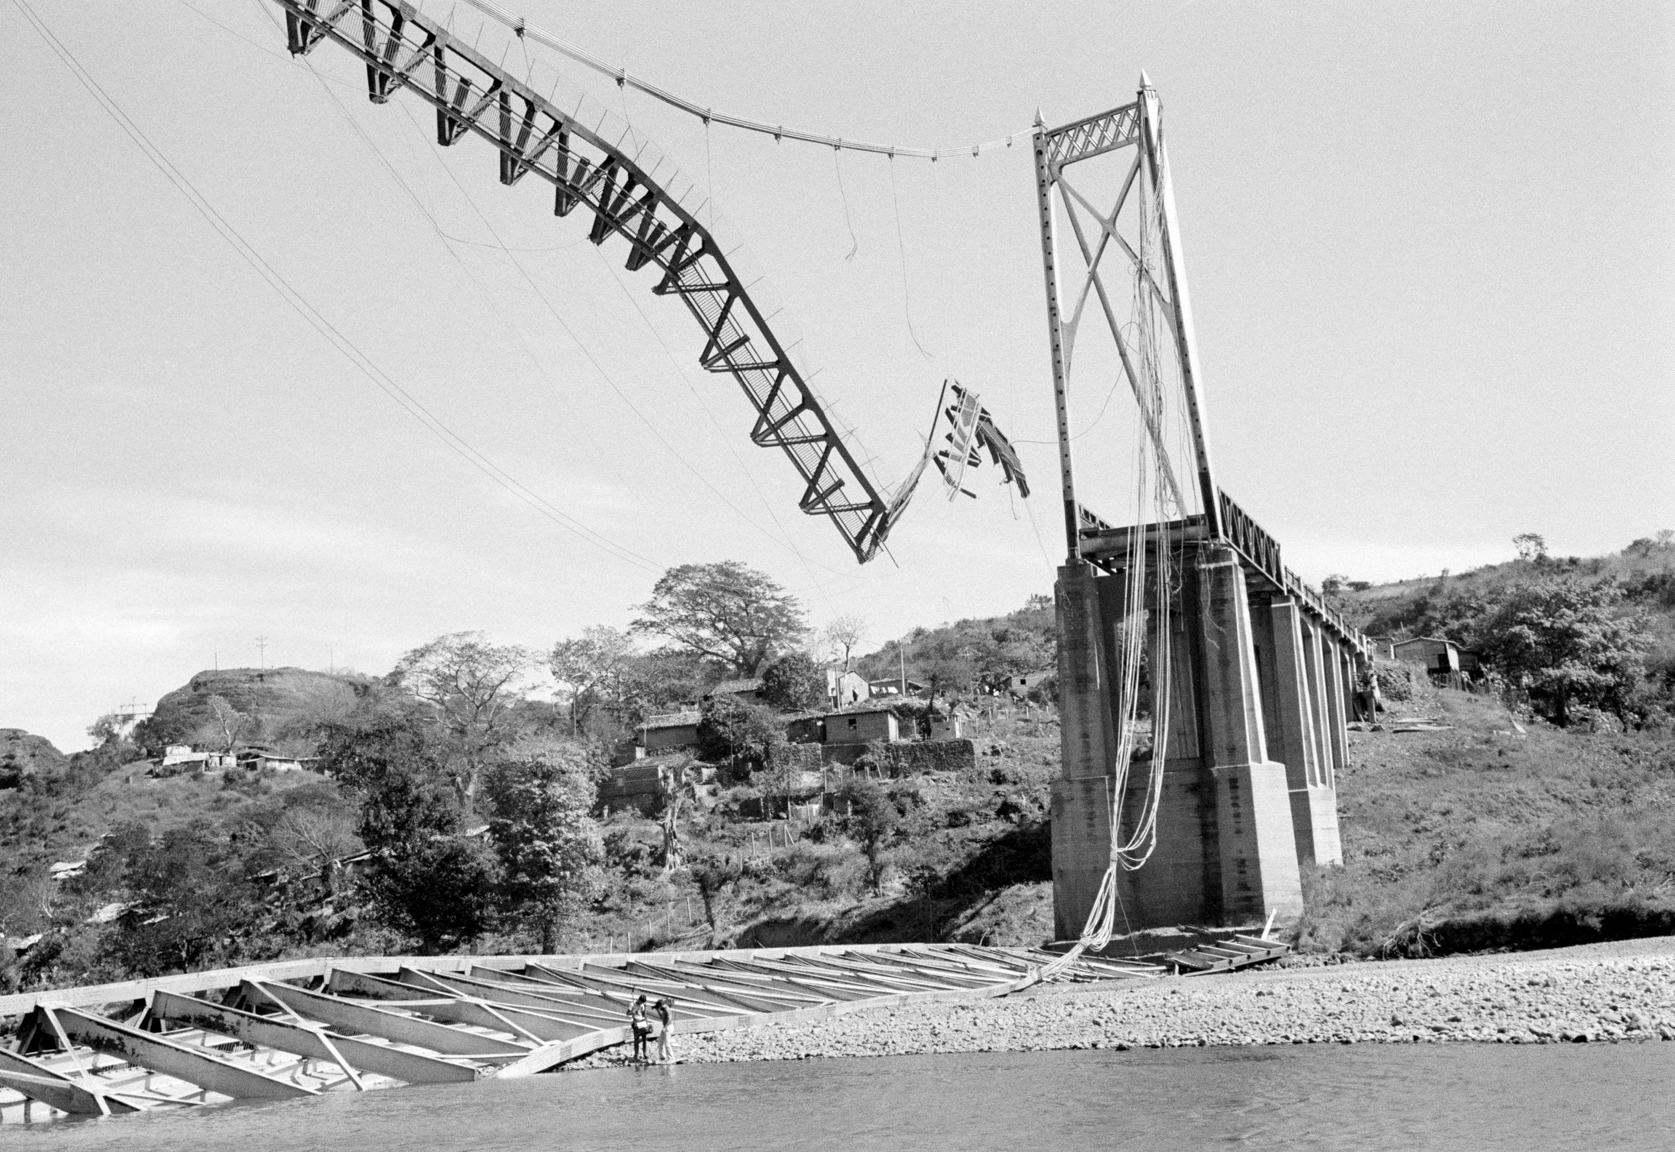 A television news crew inspects the damaged suspension bridge crossing the Lempa River January 3, 1984 that was recently bombed by leftist guerrillas in Cuscátlan, El Salvador. The 800-foot bridge is the largest in El Salvador and the largest in Central America.